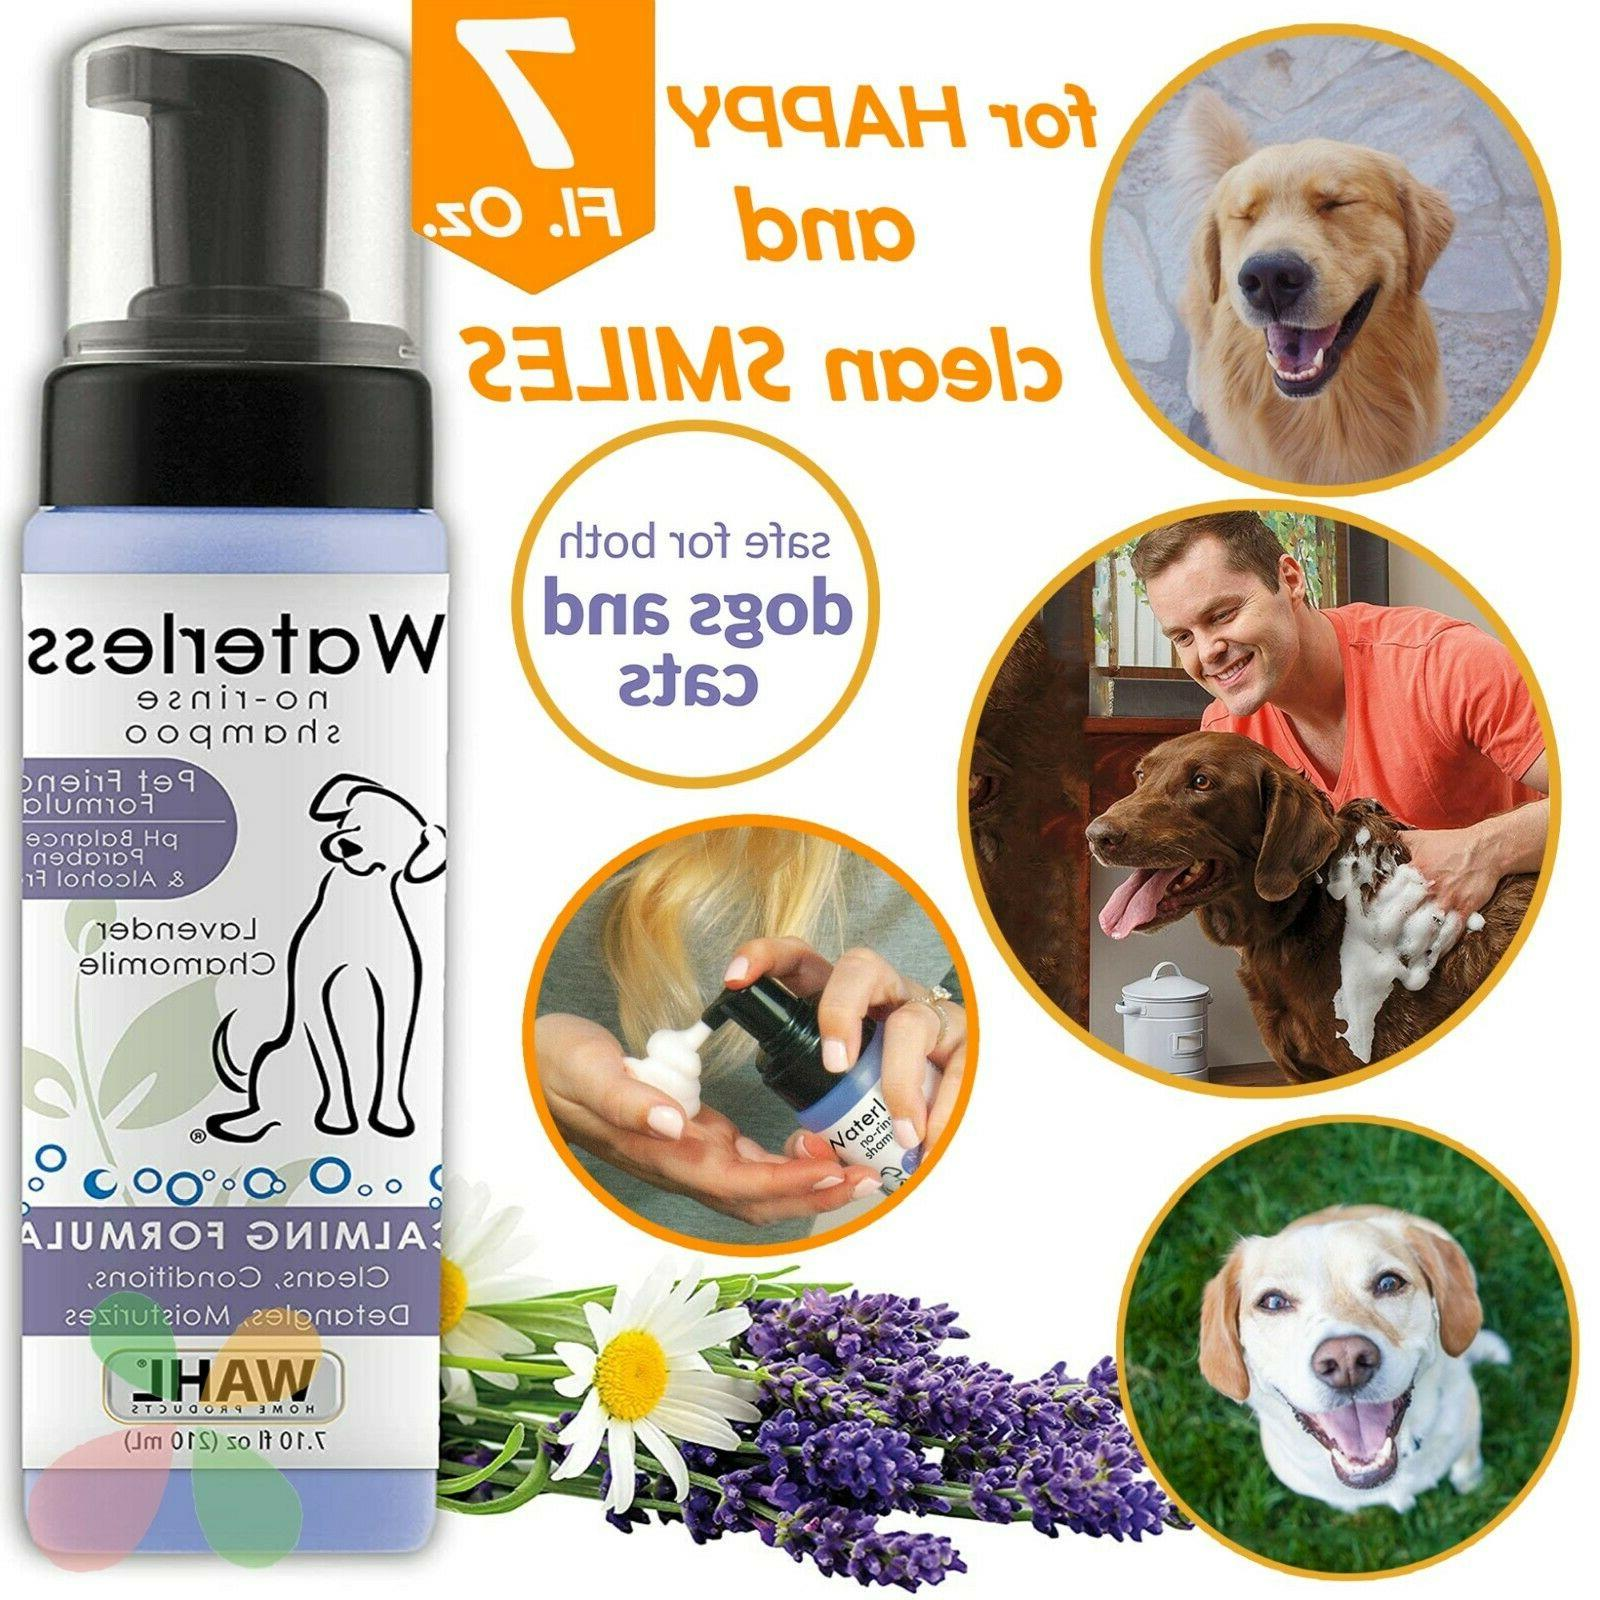 pet waterless no rinse shampoo for dogs